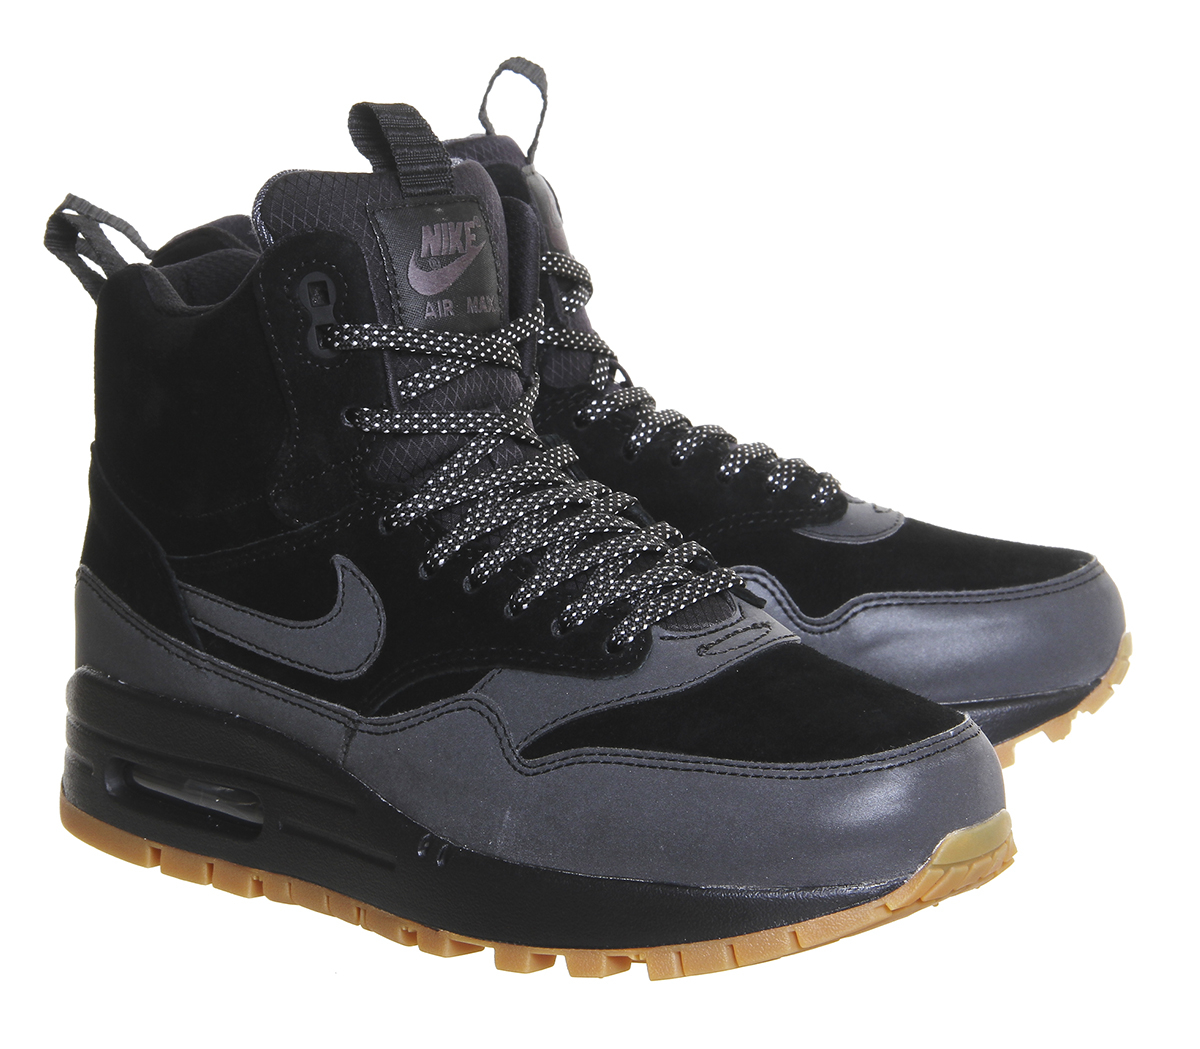 nike air max 1 mid sneakerboot w in black lyst. Black Bedroom Furniture Sets. Home Design Ideas